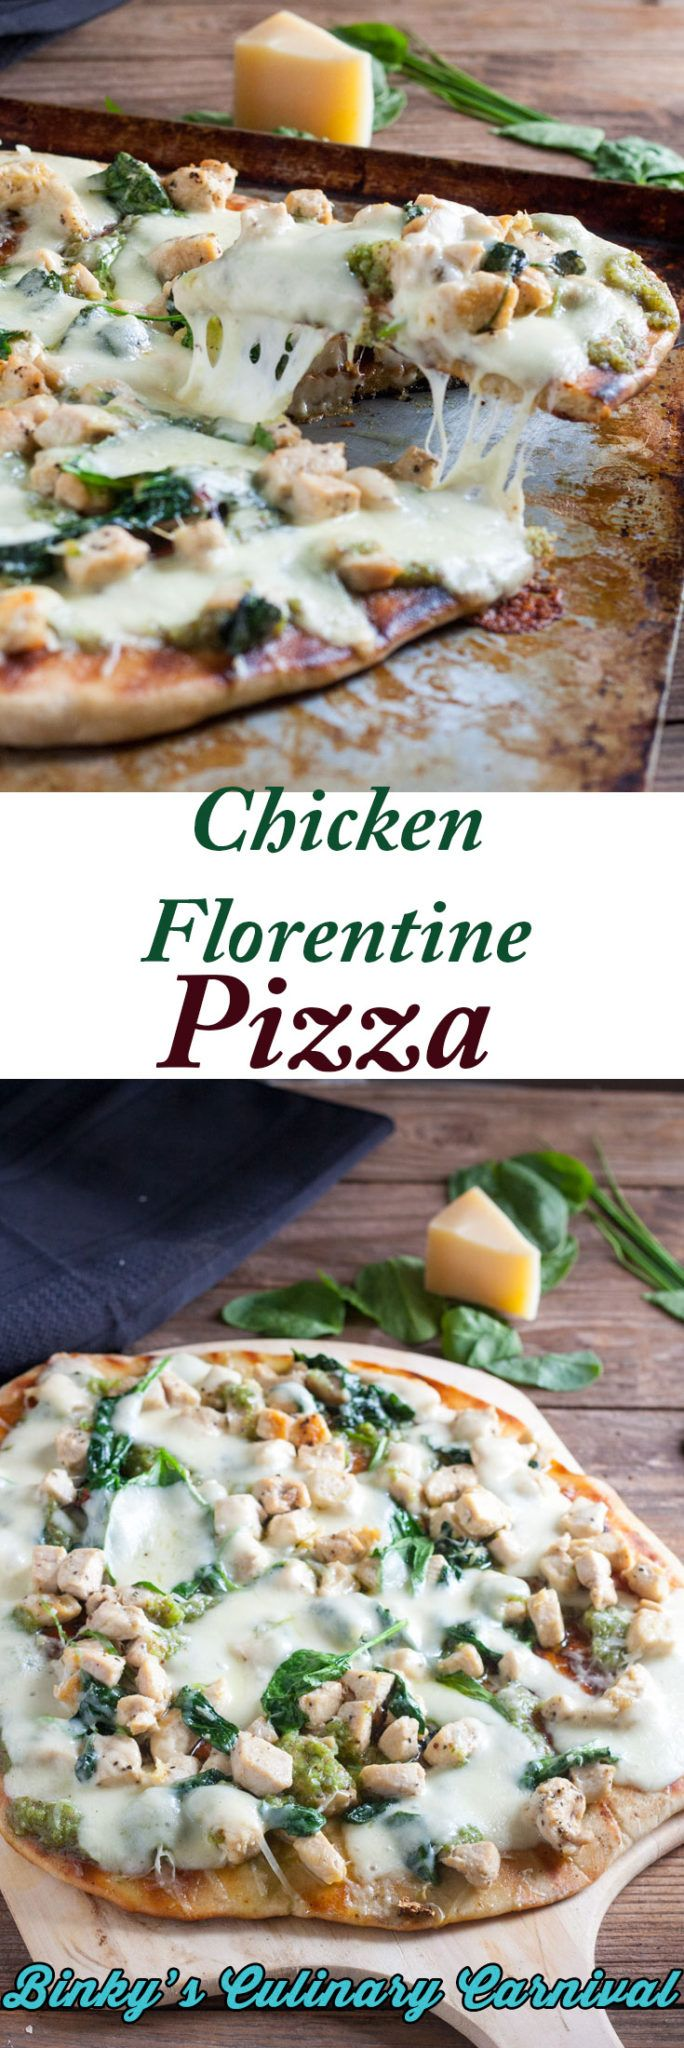 #Chicken #Florentine #Pizza with #Garlic Scape #Pesto  #ifbcx #binkysculinaryc #garlicscape via @binkysculinaryc